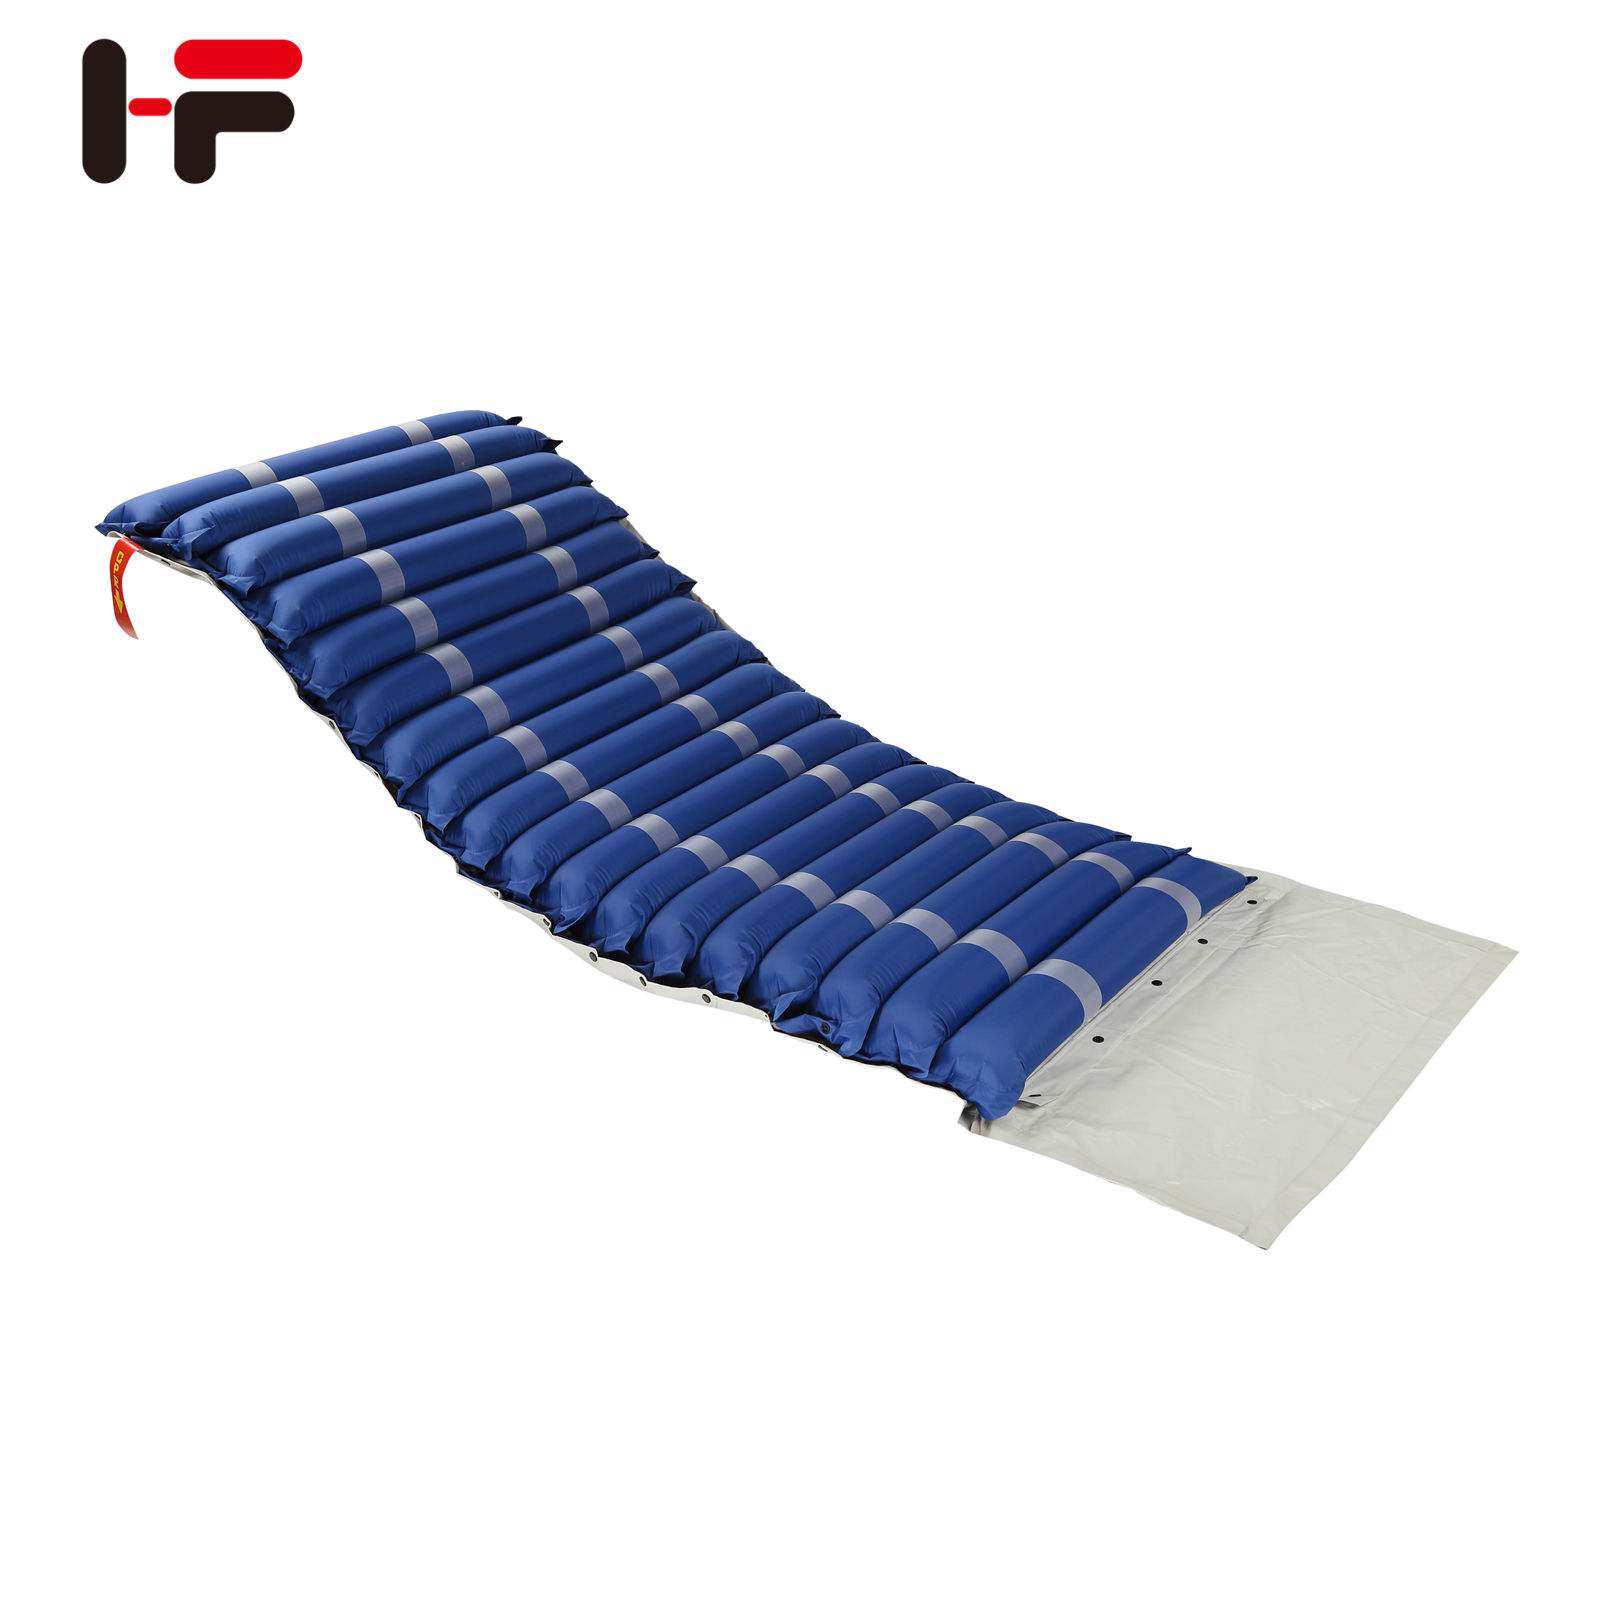 FOFO MEDICAL anti-decubitus air mattress for prevention of bed sores and pressure wounds